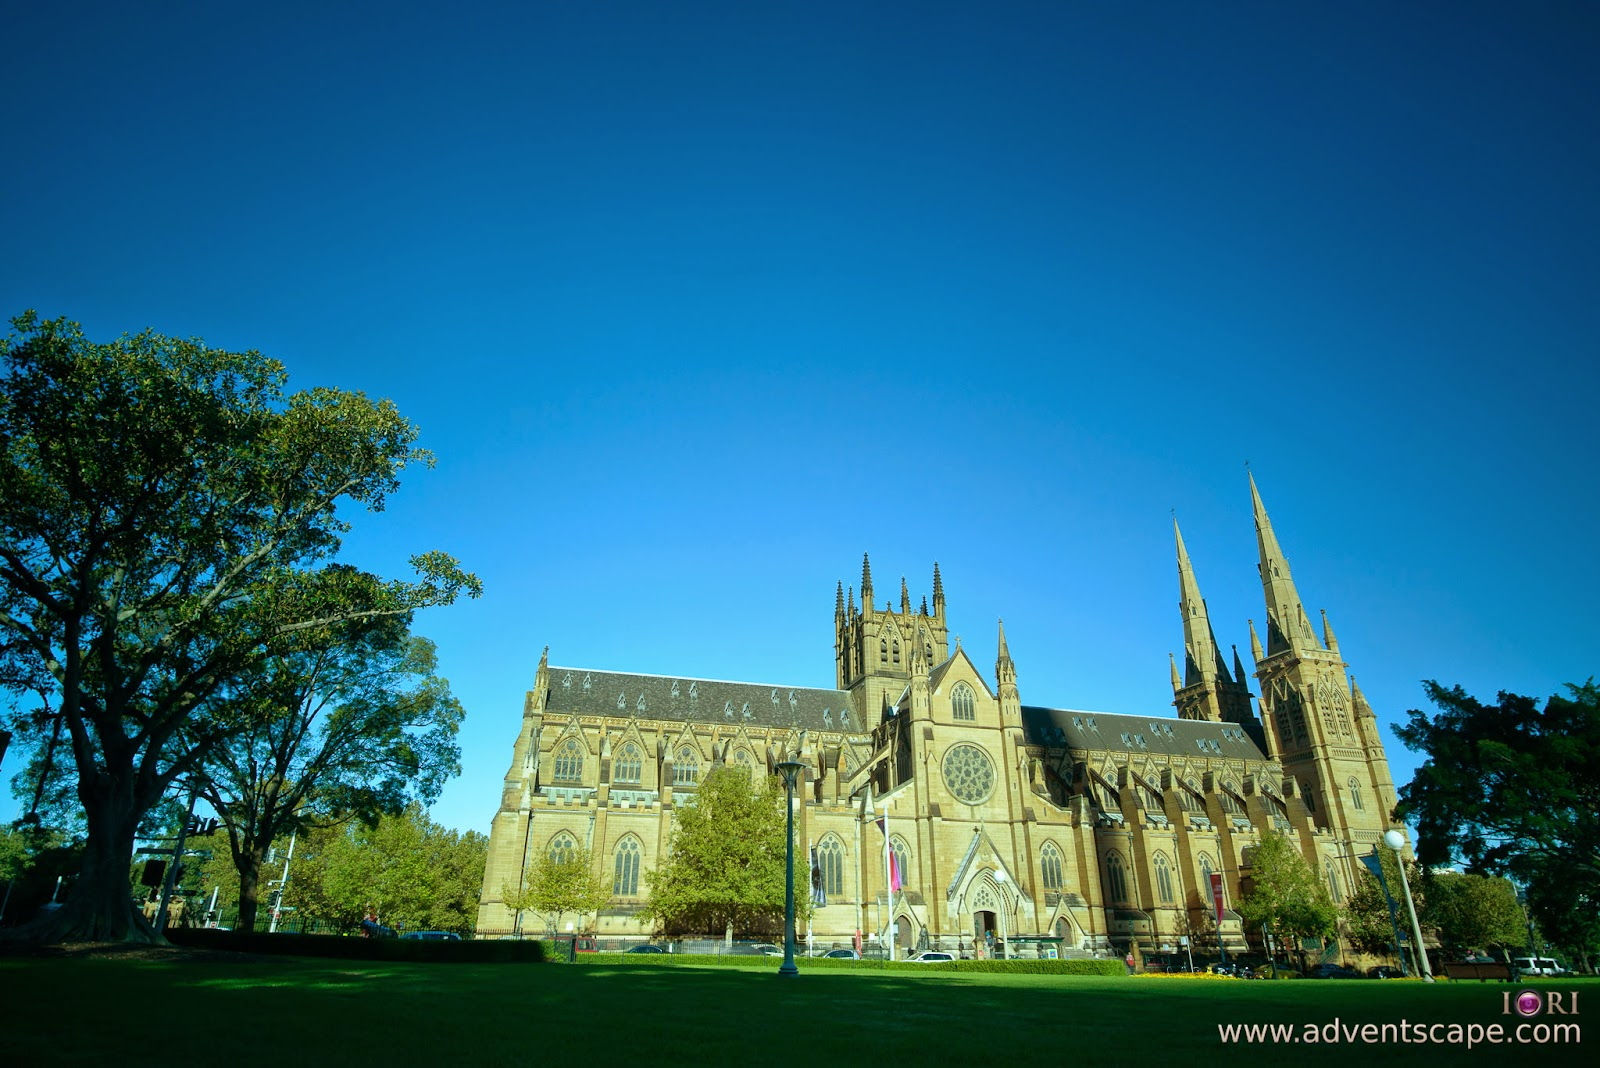 Philip Avellana, Australian Landscape Photographer, NSW, New South Wales, Sydney, Australia, St Mary's Cathedral, church, comparison, review, glass vs resin, filters, Lee Filters, soft ND, ND, neutral density, graduated neutral density, GND, grad nd, resin, 1.8, 6 stops, Hitech